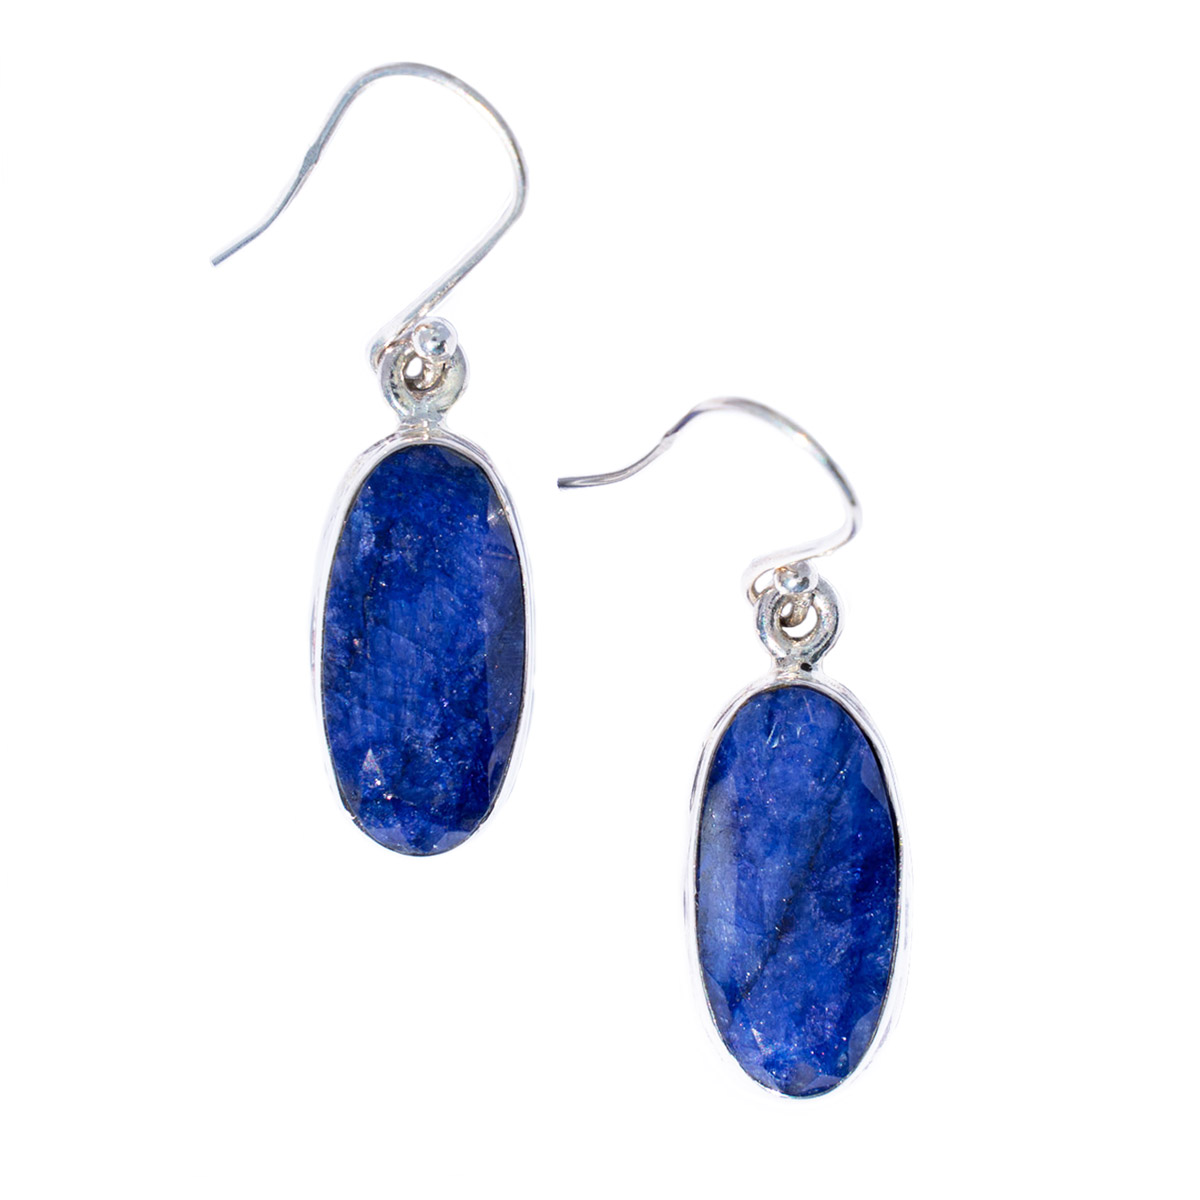 Sri Avinash Infused™ 12.3cts Sapphire Earrings in Sterling Silver - Divine Blessings Infusion